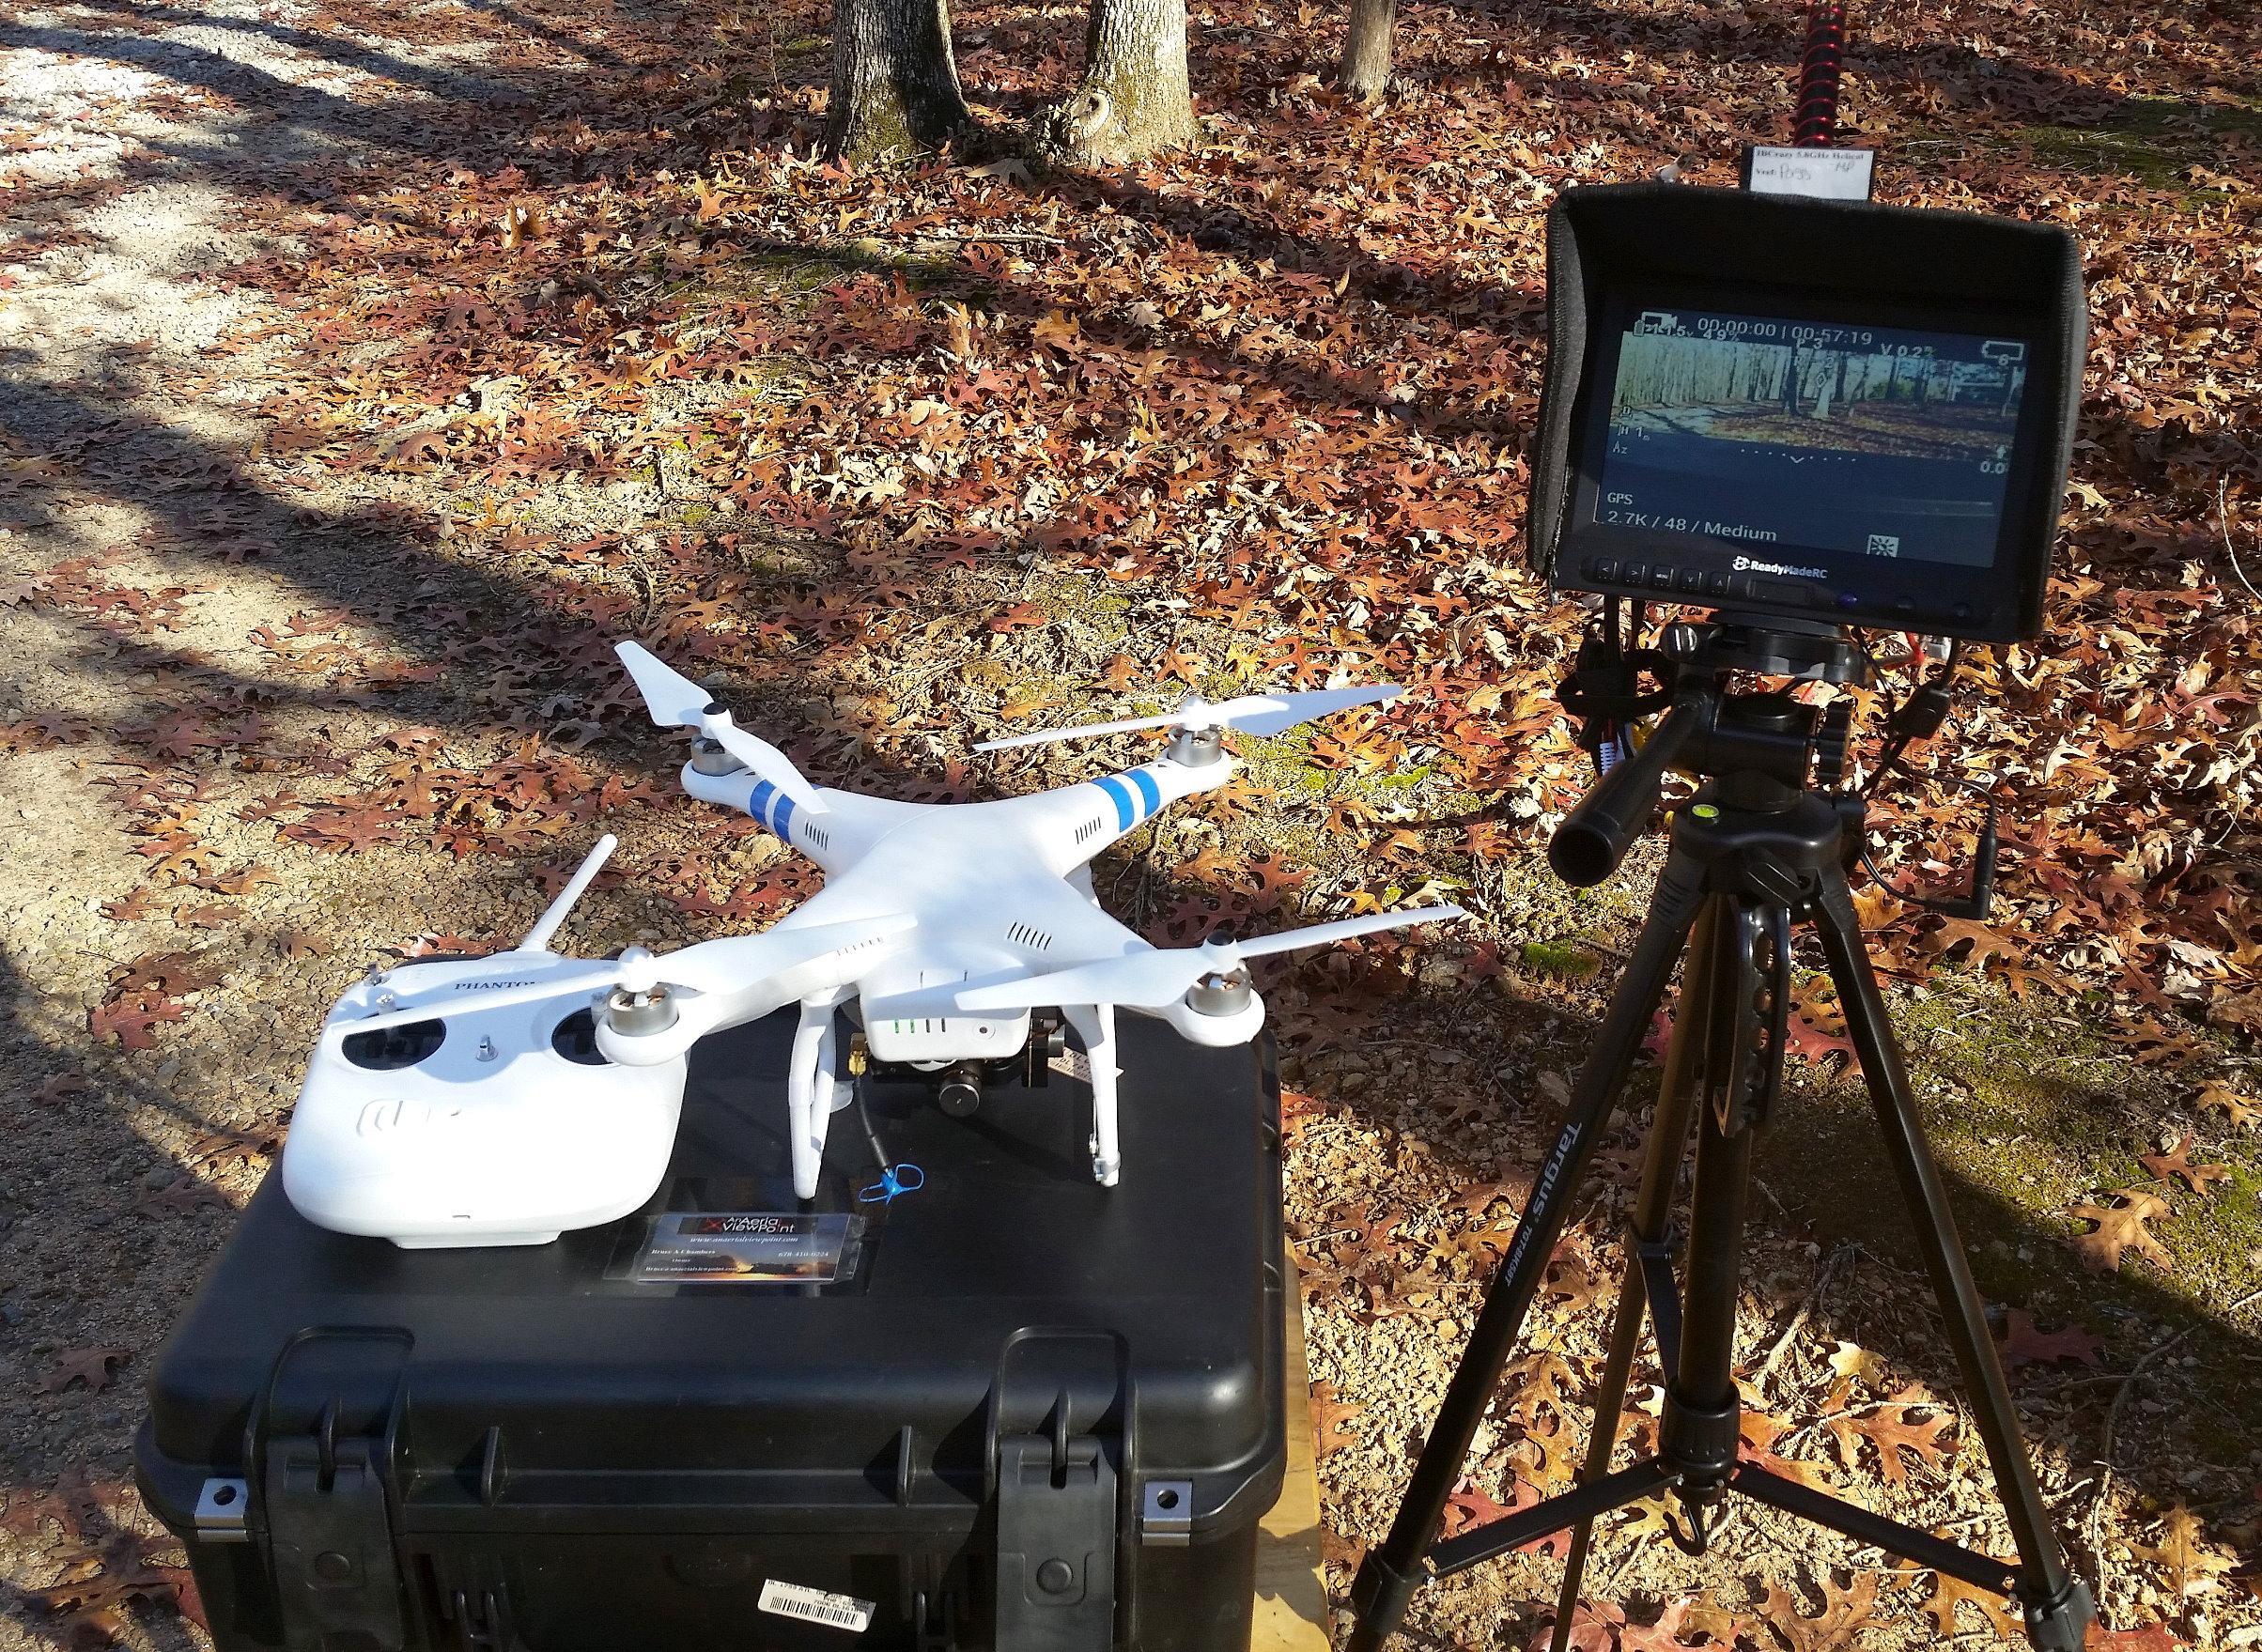 The Authors Basic Aerial Video Setup Featuring DJIs Phantom 2 And GoPro HERO4 Black